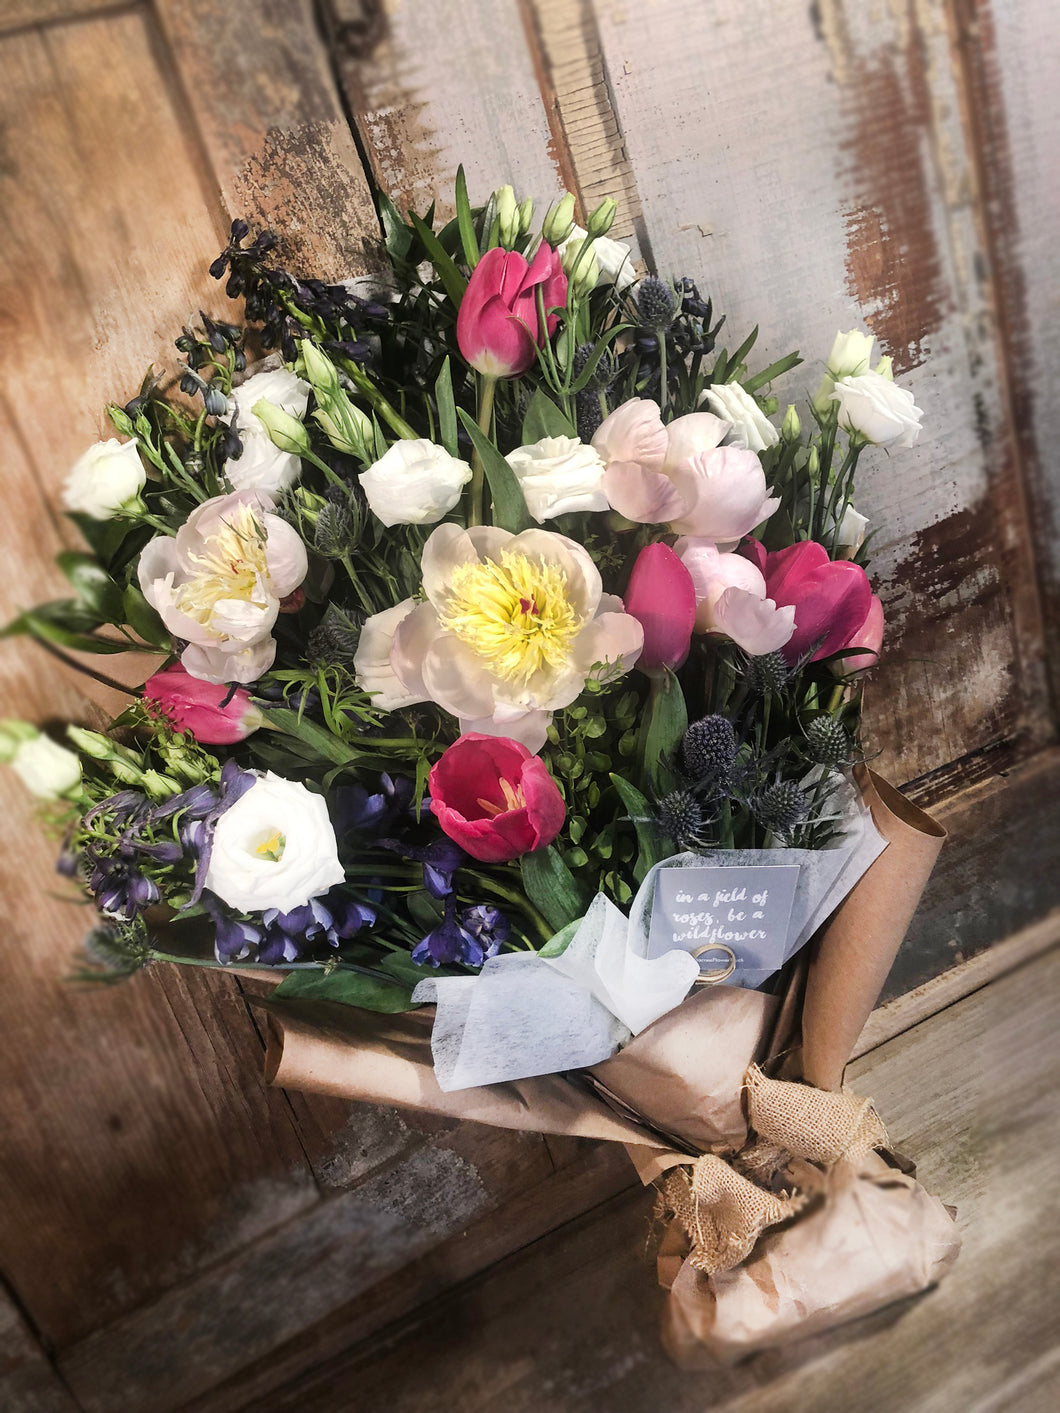 Deluxe Seasonal Hand-Tied Bouquet